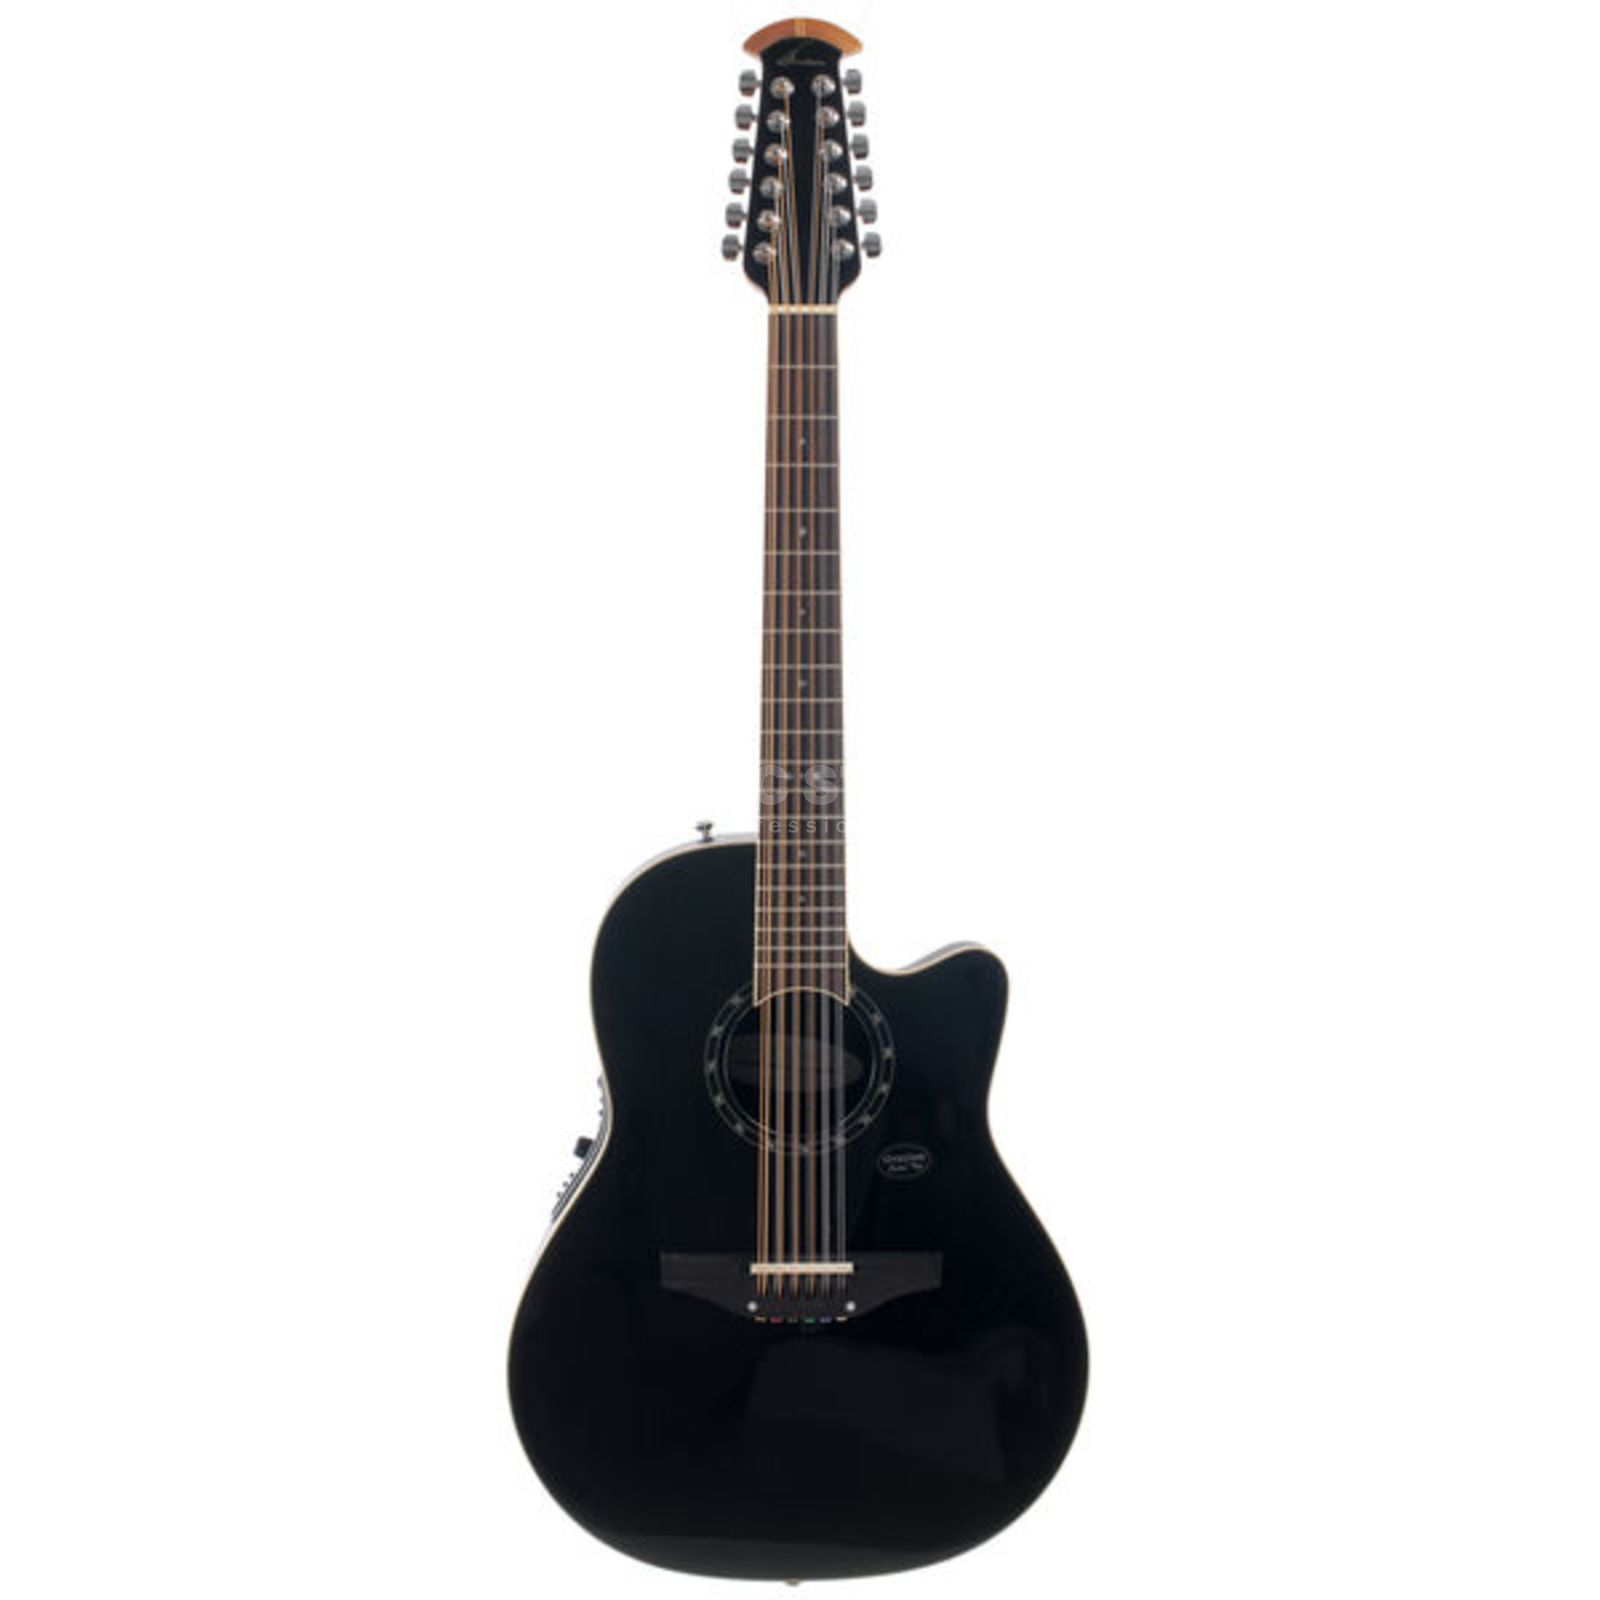 Ovation 2751AX-5 12 String Black Produktbillede